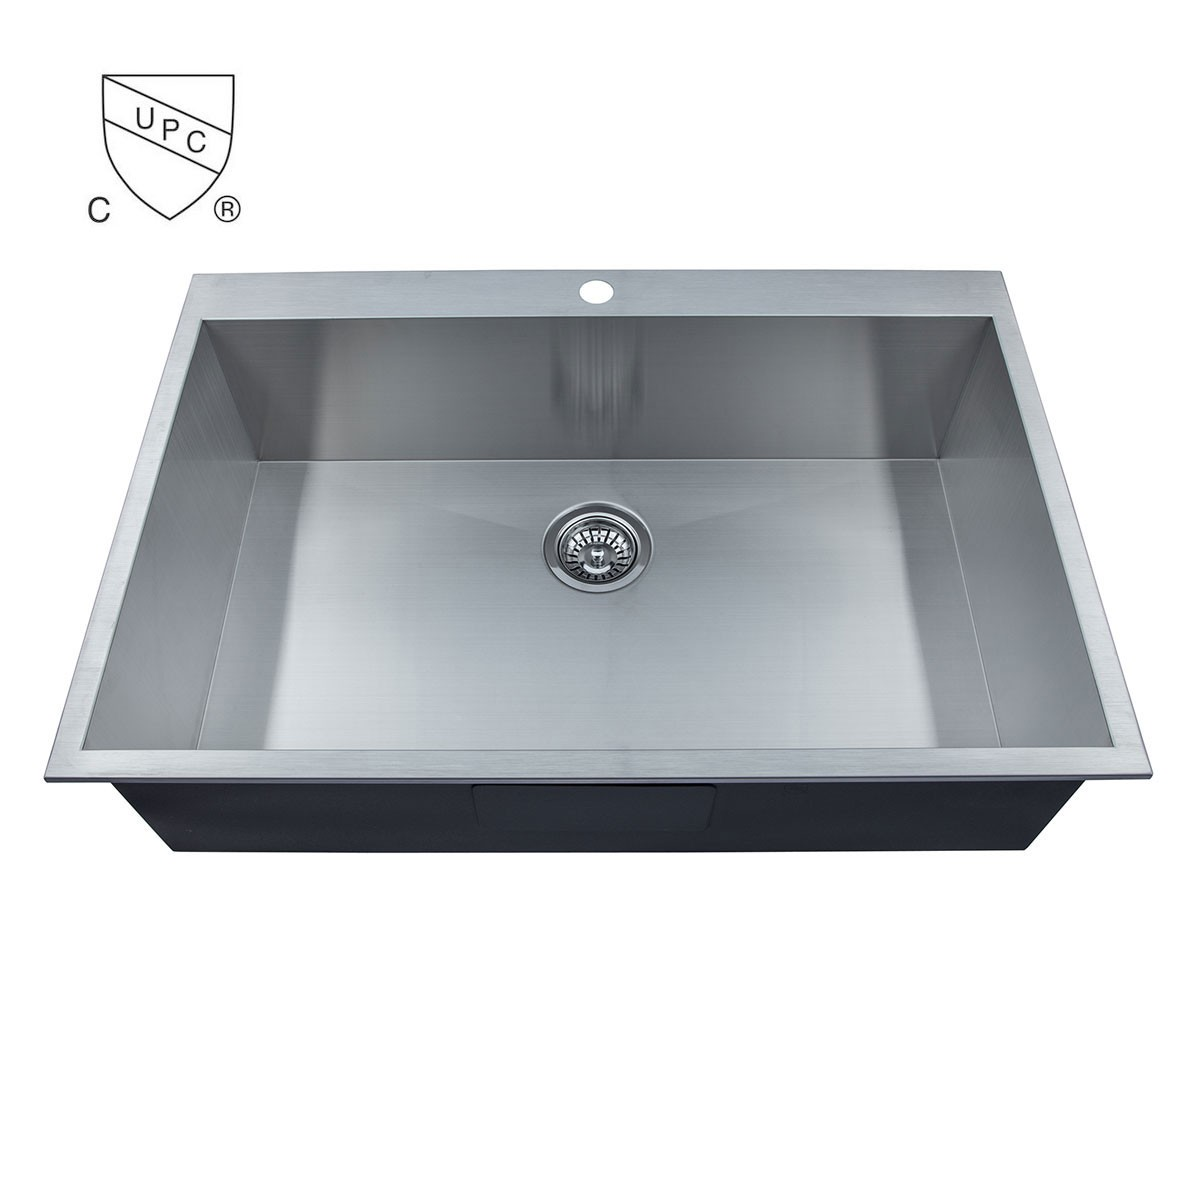 Stainless Steel Single Bowl Handmade Kitchen Sink (AS3322-R0)